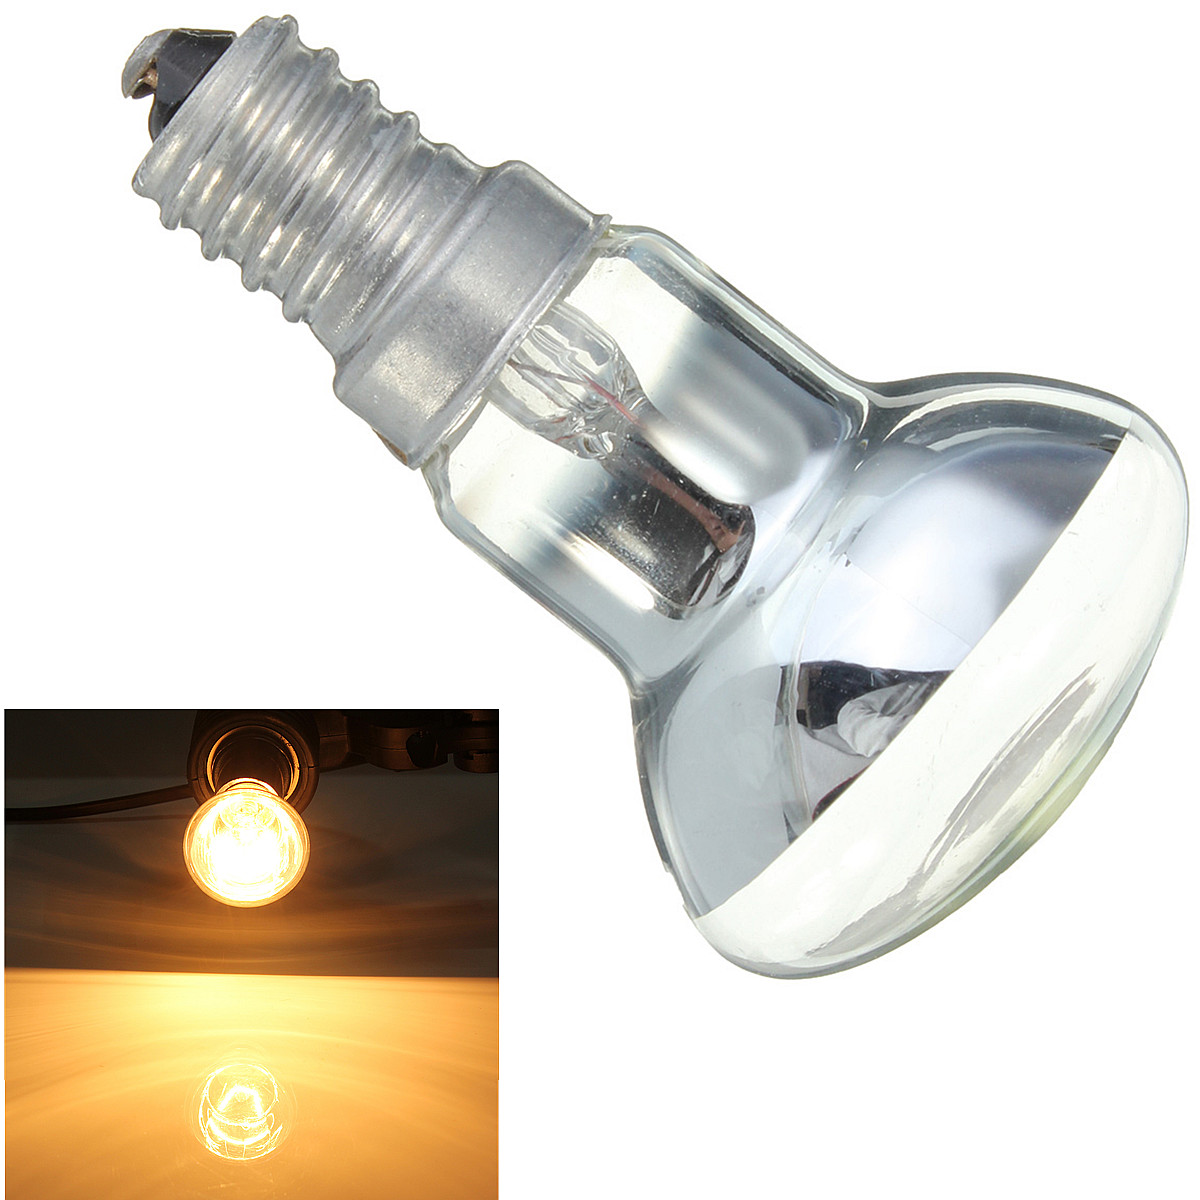 Replacement for Eiko 43022 Light Bulb 2 Pack